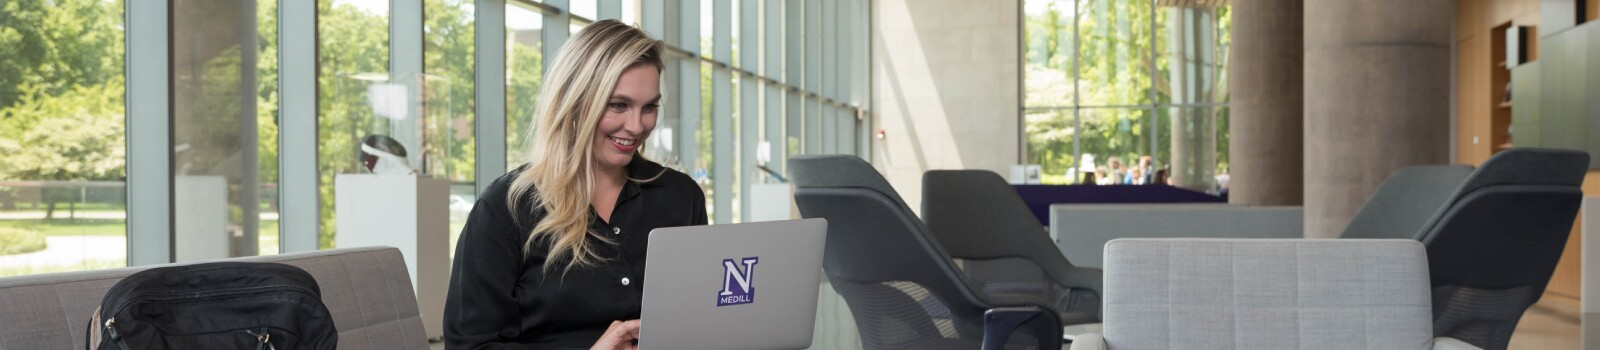 IMC graduate on laptop in the lobby of the Evanston campus